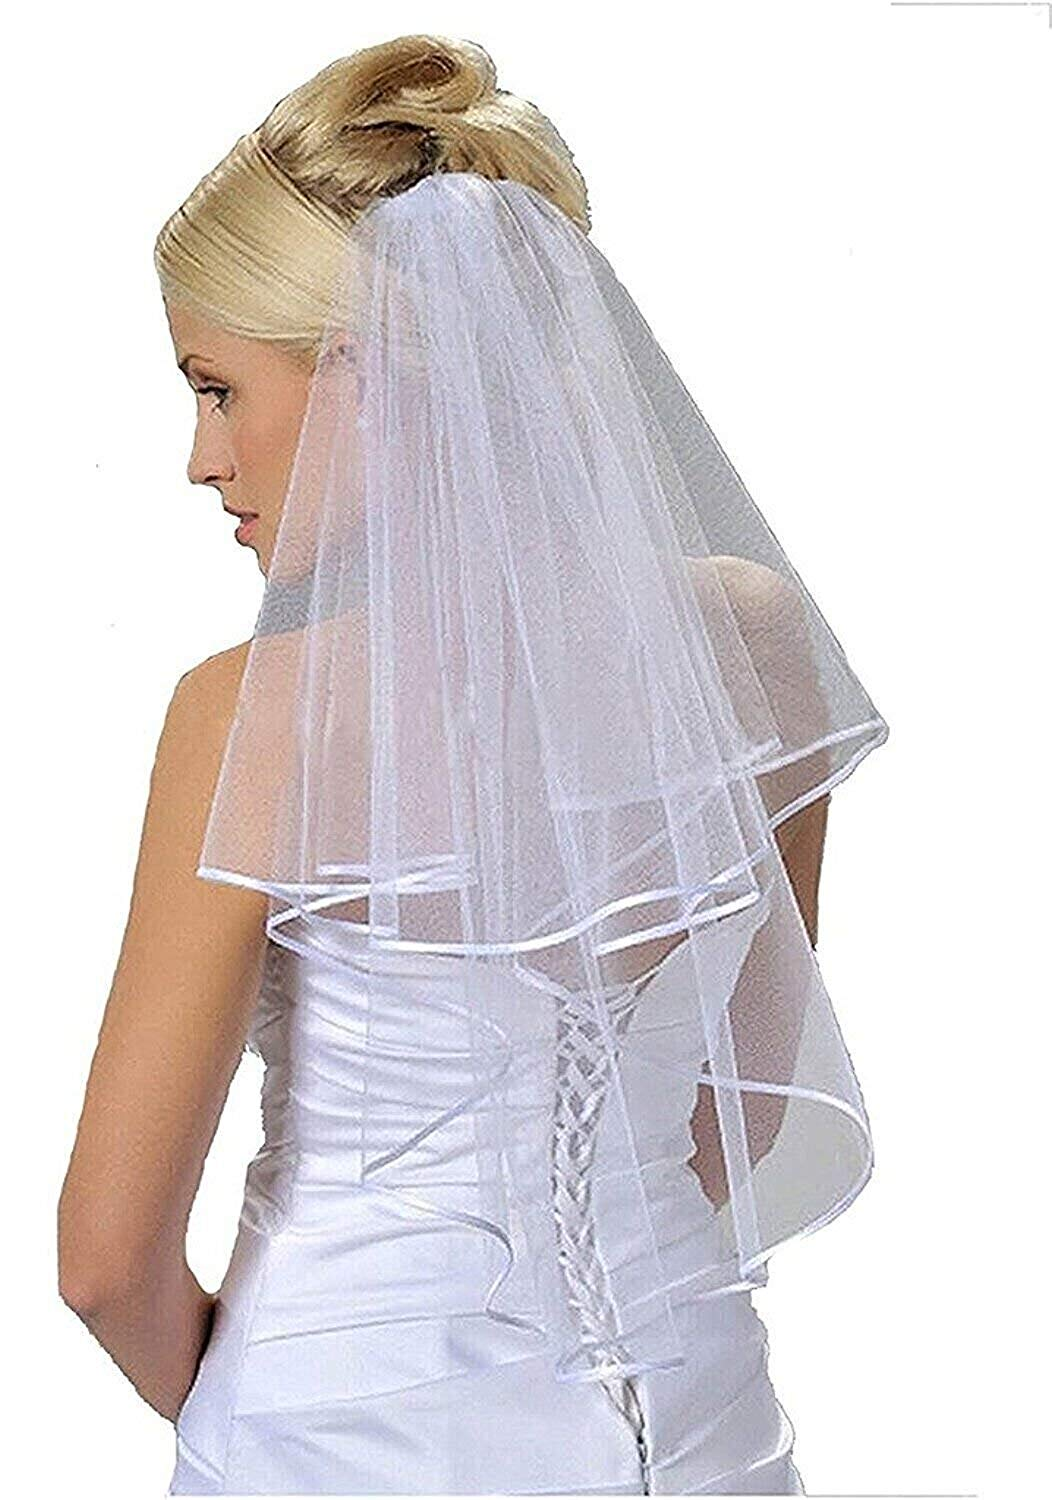 Women's 2 Layers Short Bridal Veil Wedding With Comb